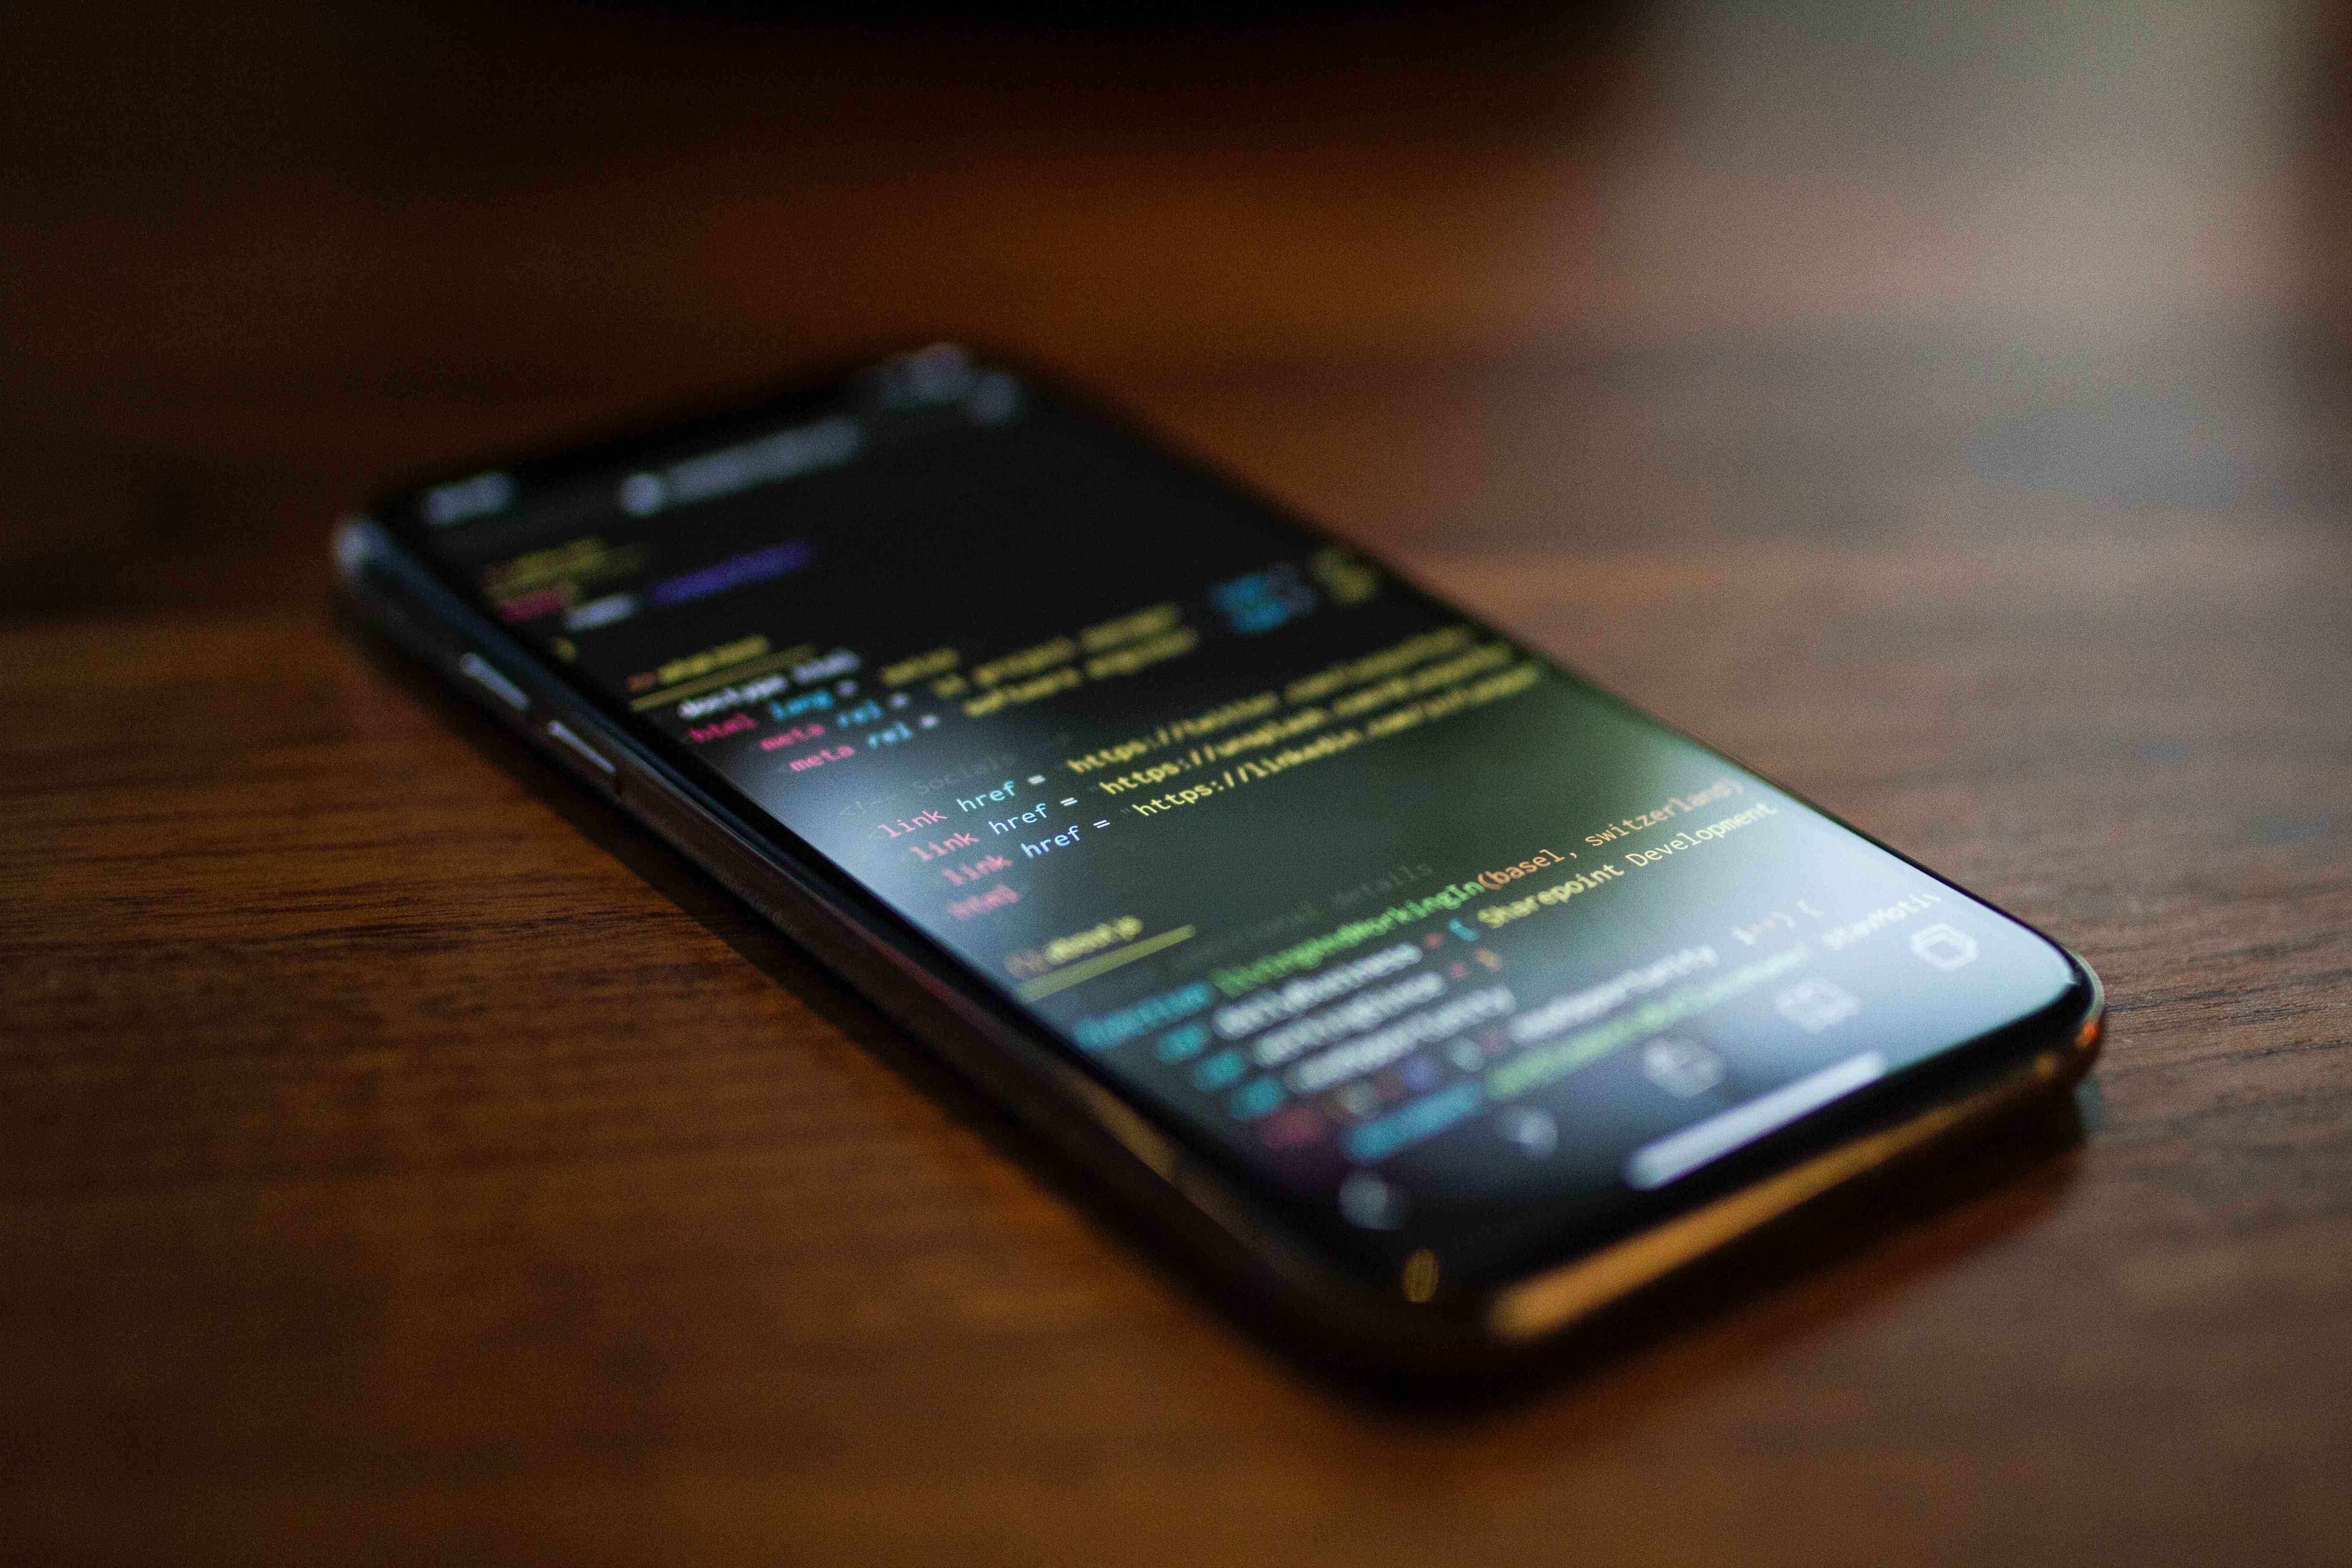 A smartphone with code displayed on the screen sitting on a wooden surface.